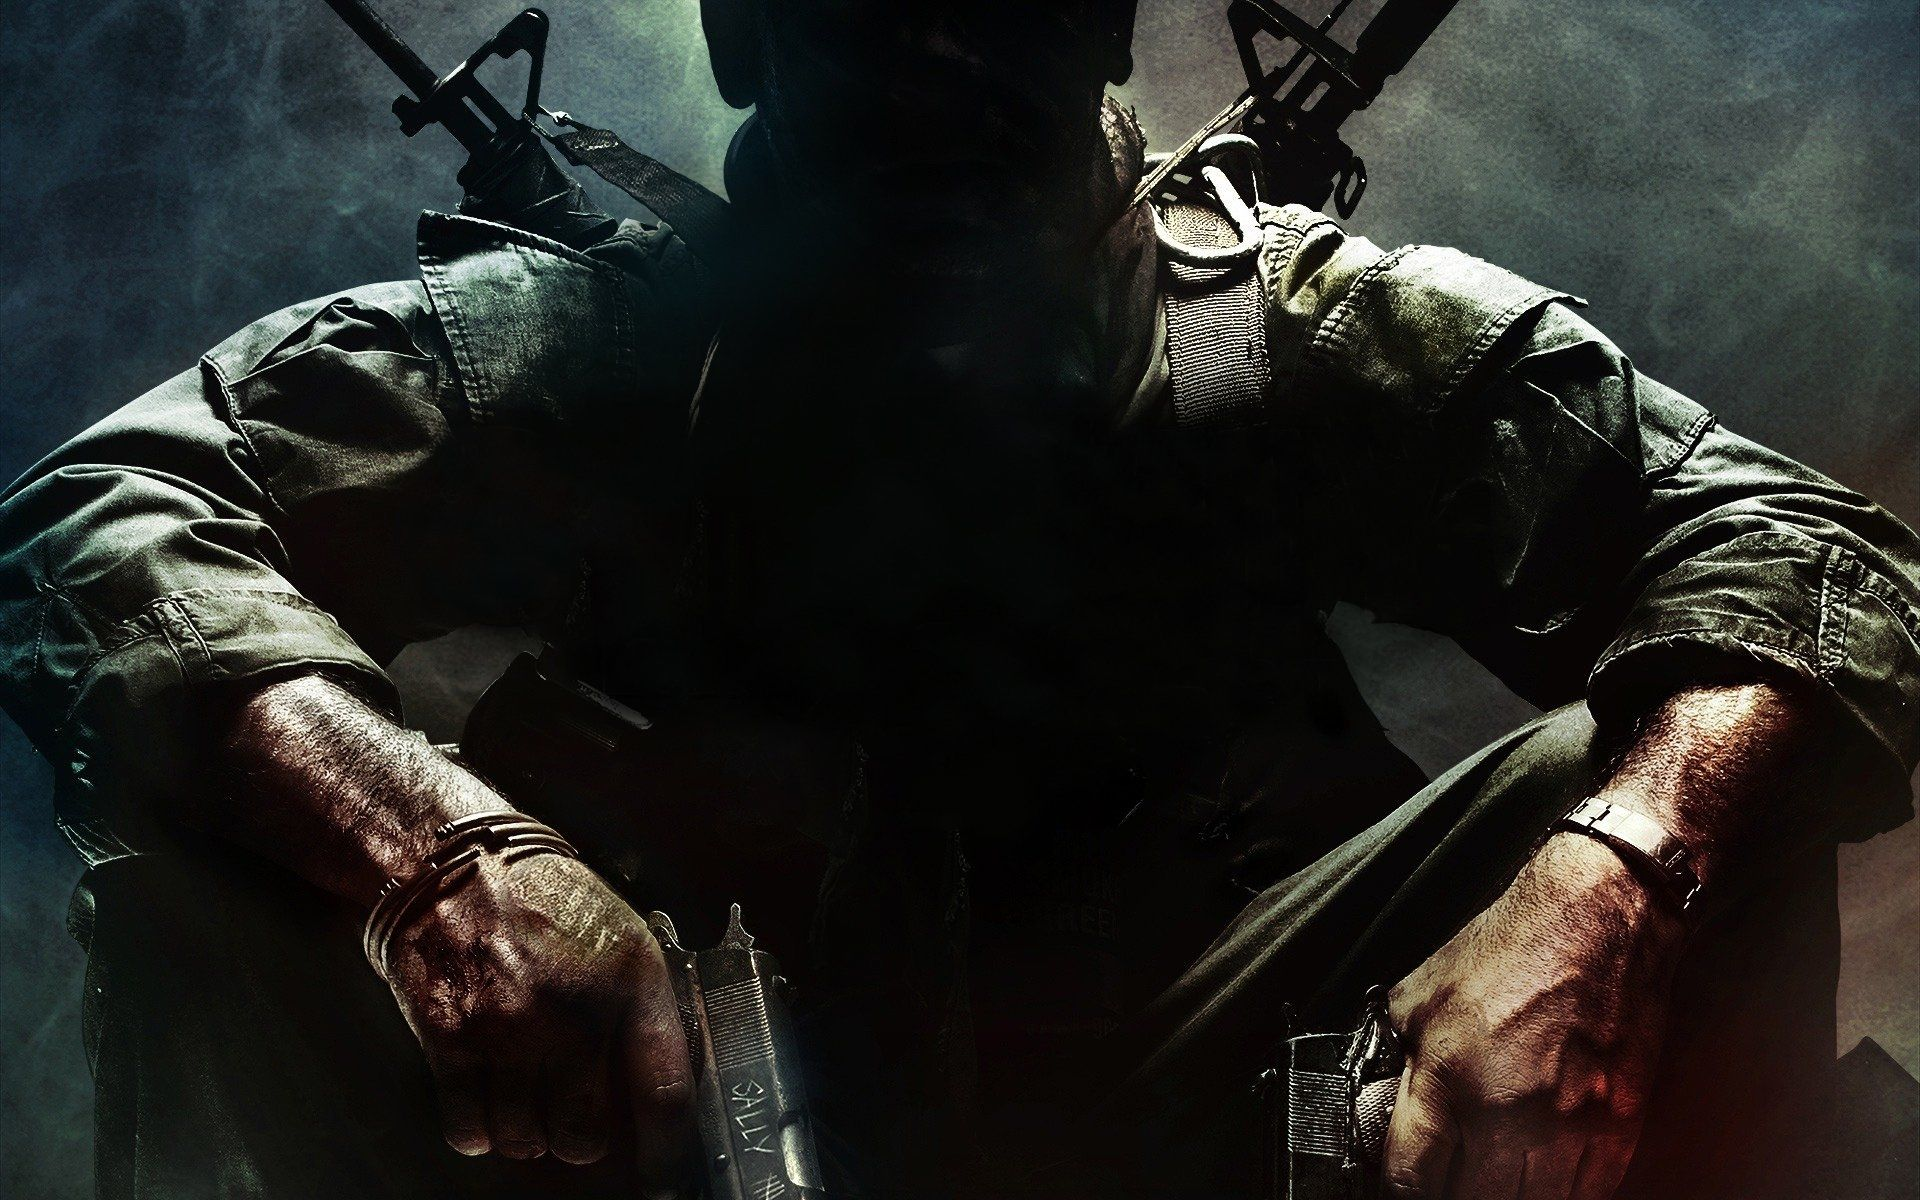 10 Top Call Of Duty Black Ops Wallpaper Full Hd 1920 1080 For Pc